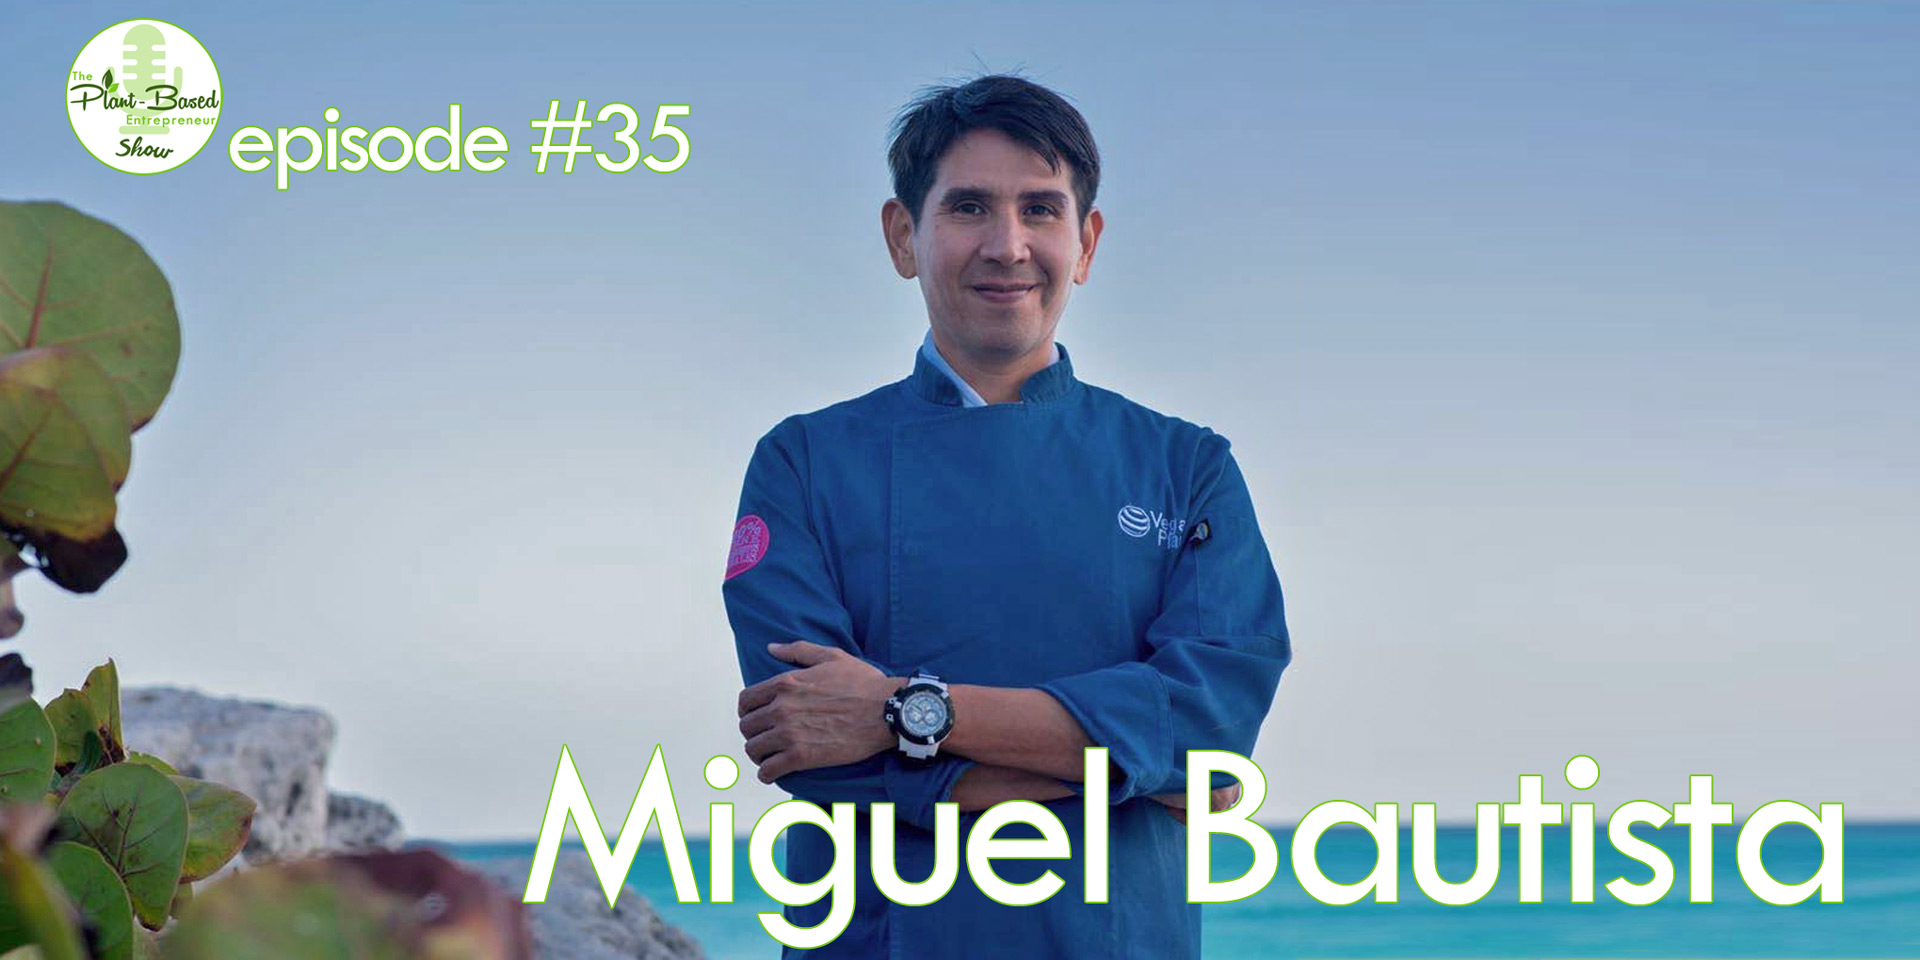 Episode #35 - Chef Miguel Bautista